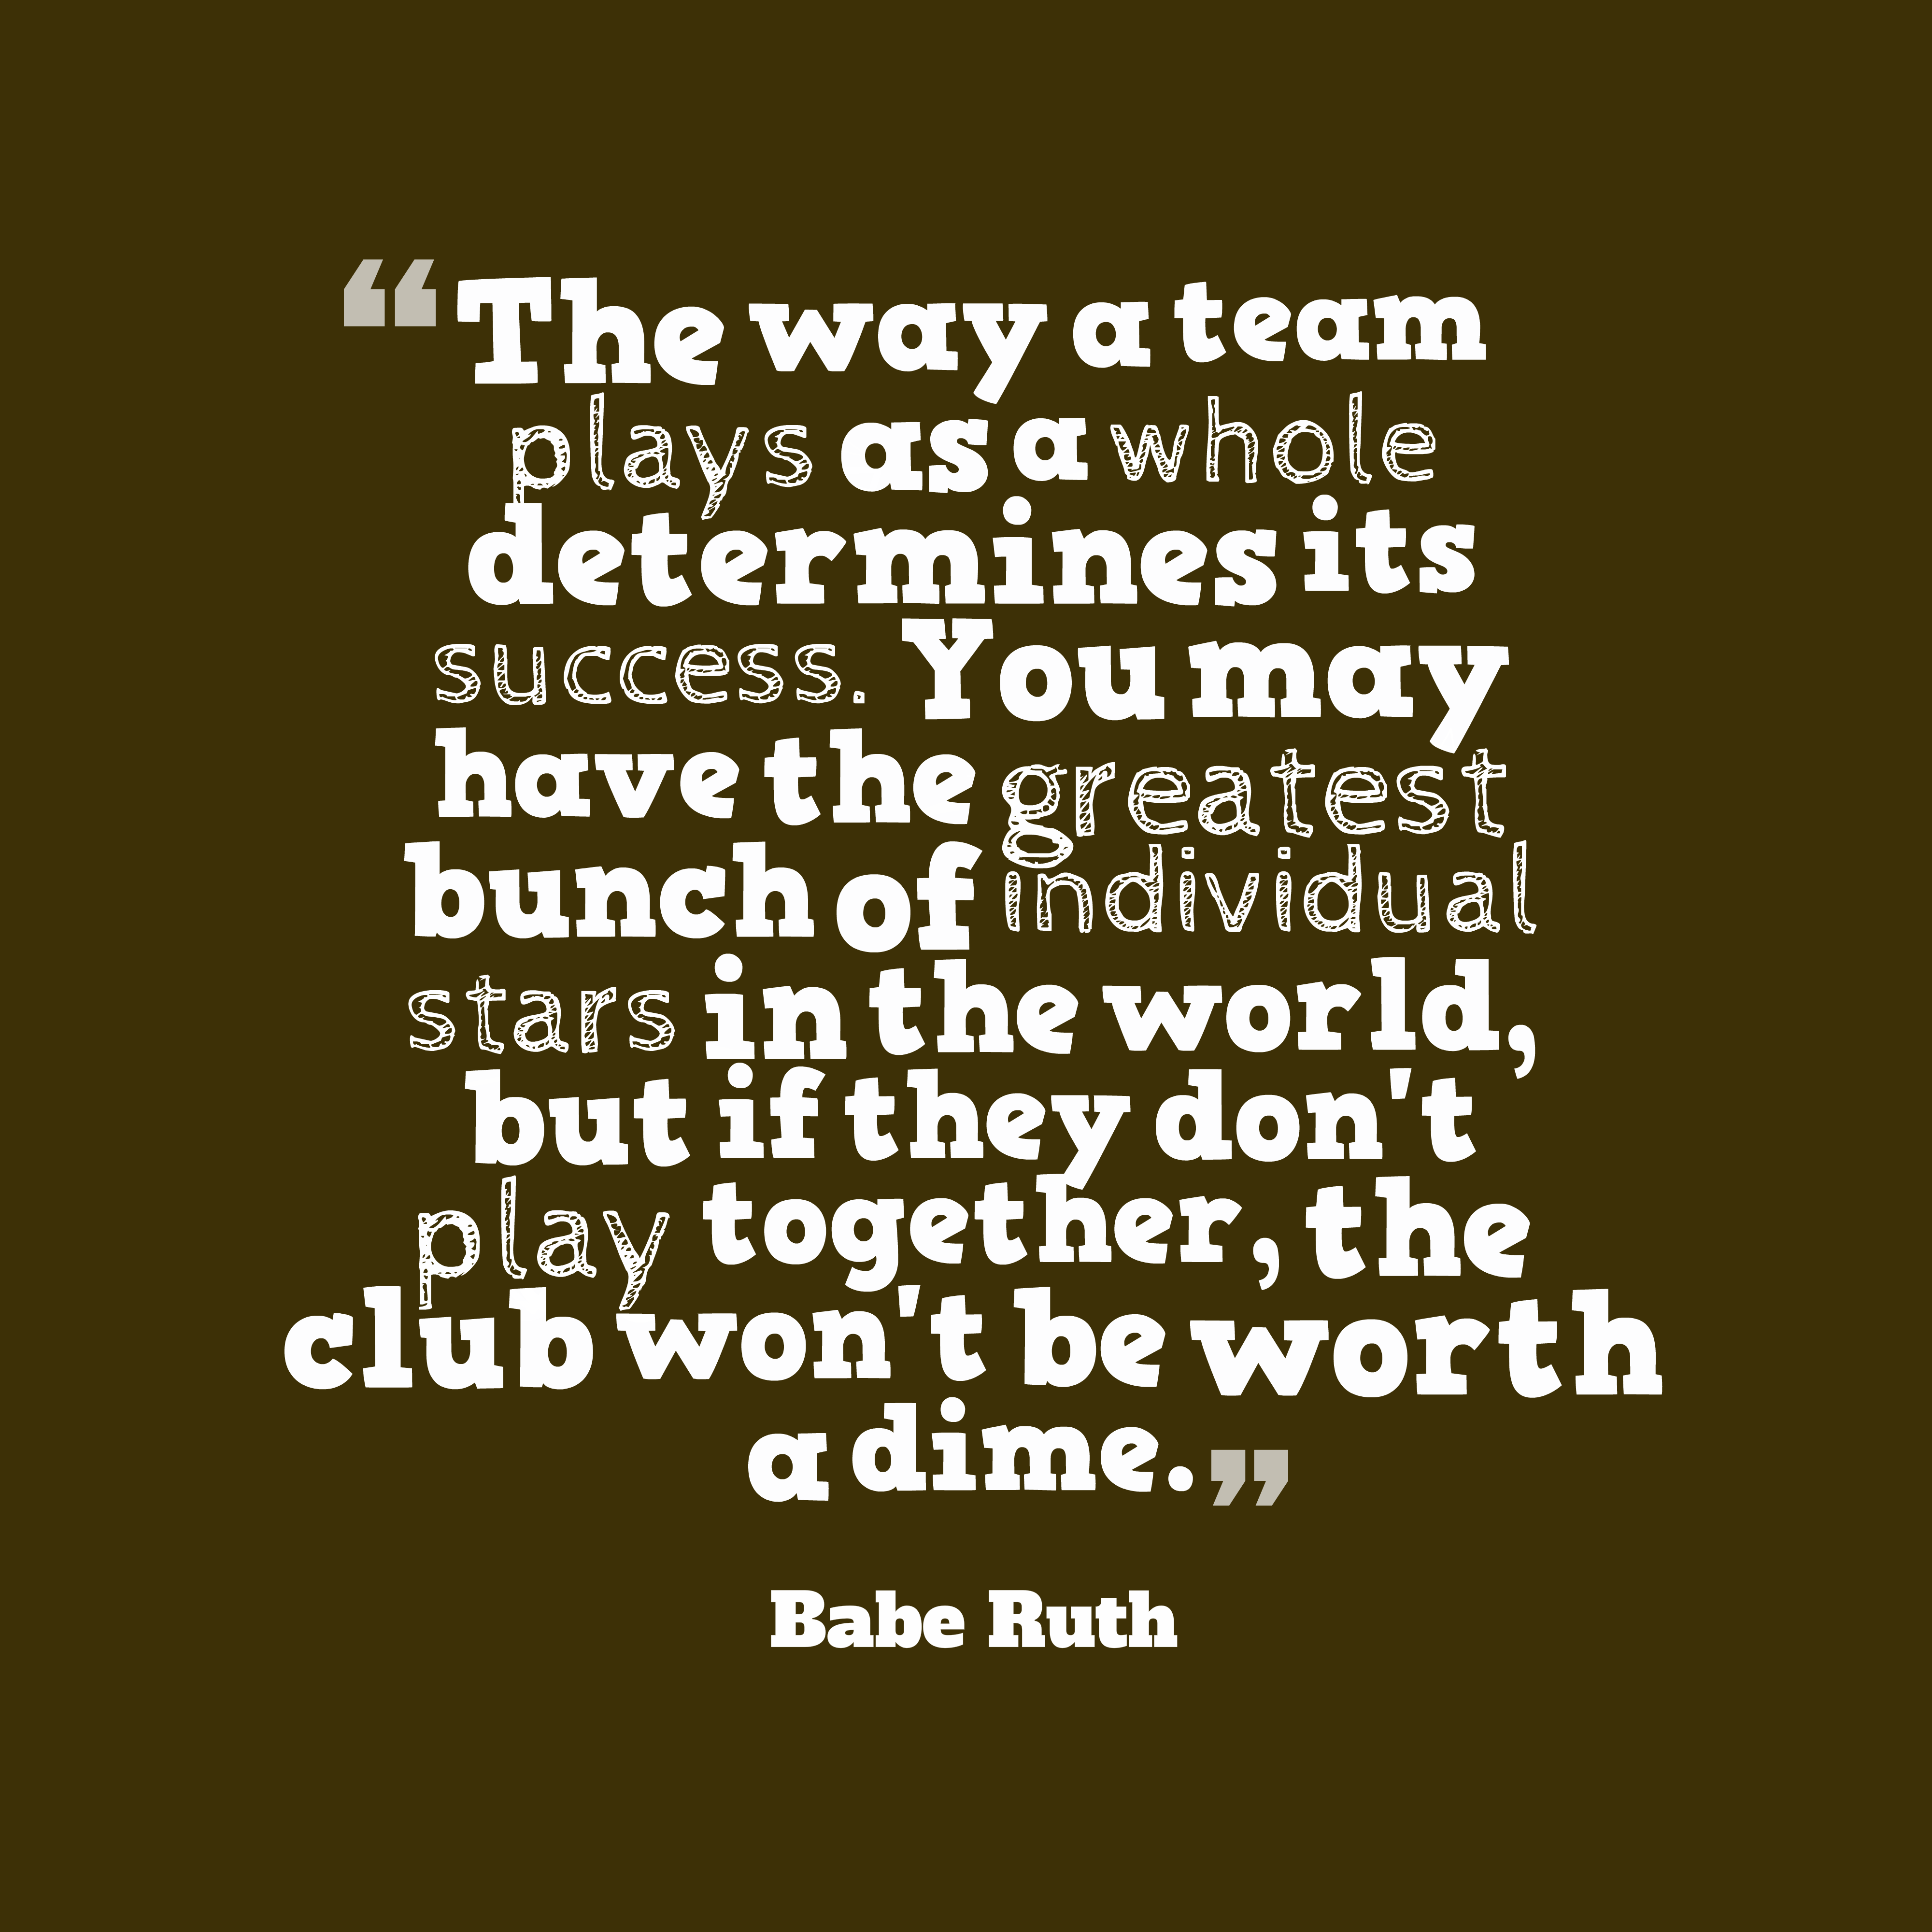 Quotes image of The way a team plays as a whole determines its success. You may have the greatest bunch of individual stars in the world, but if they don't play together, the club won't be worth a dime.